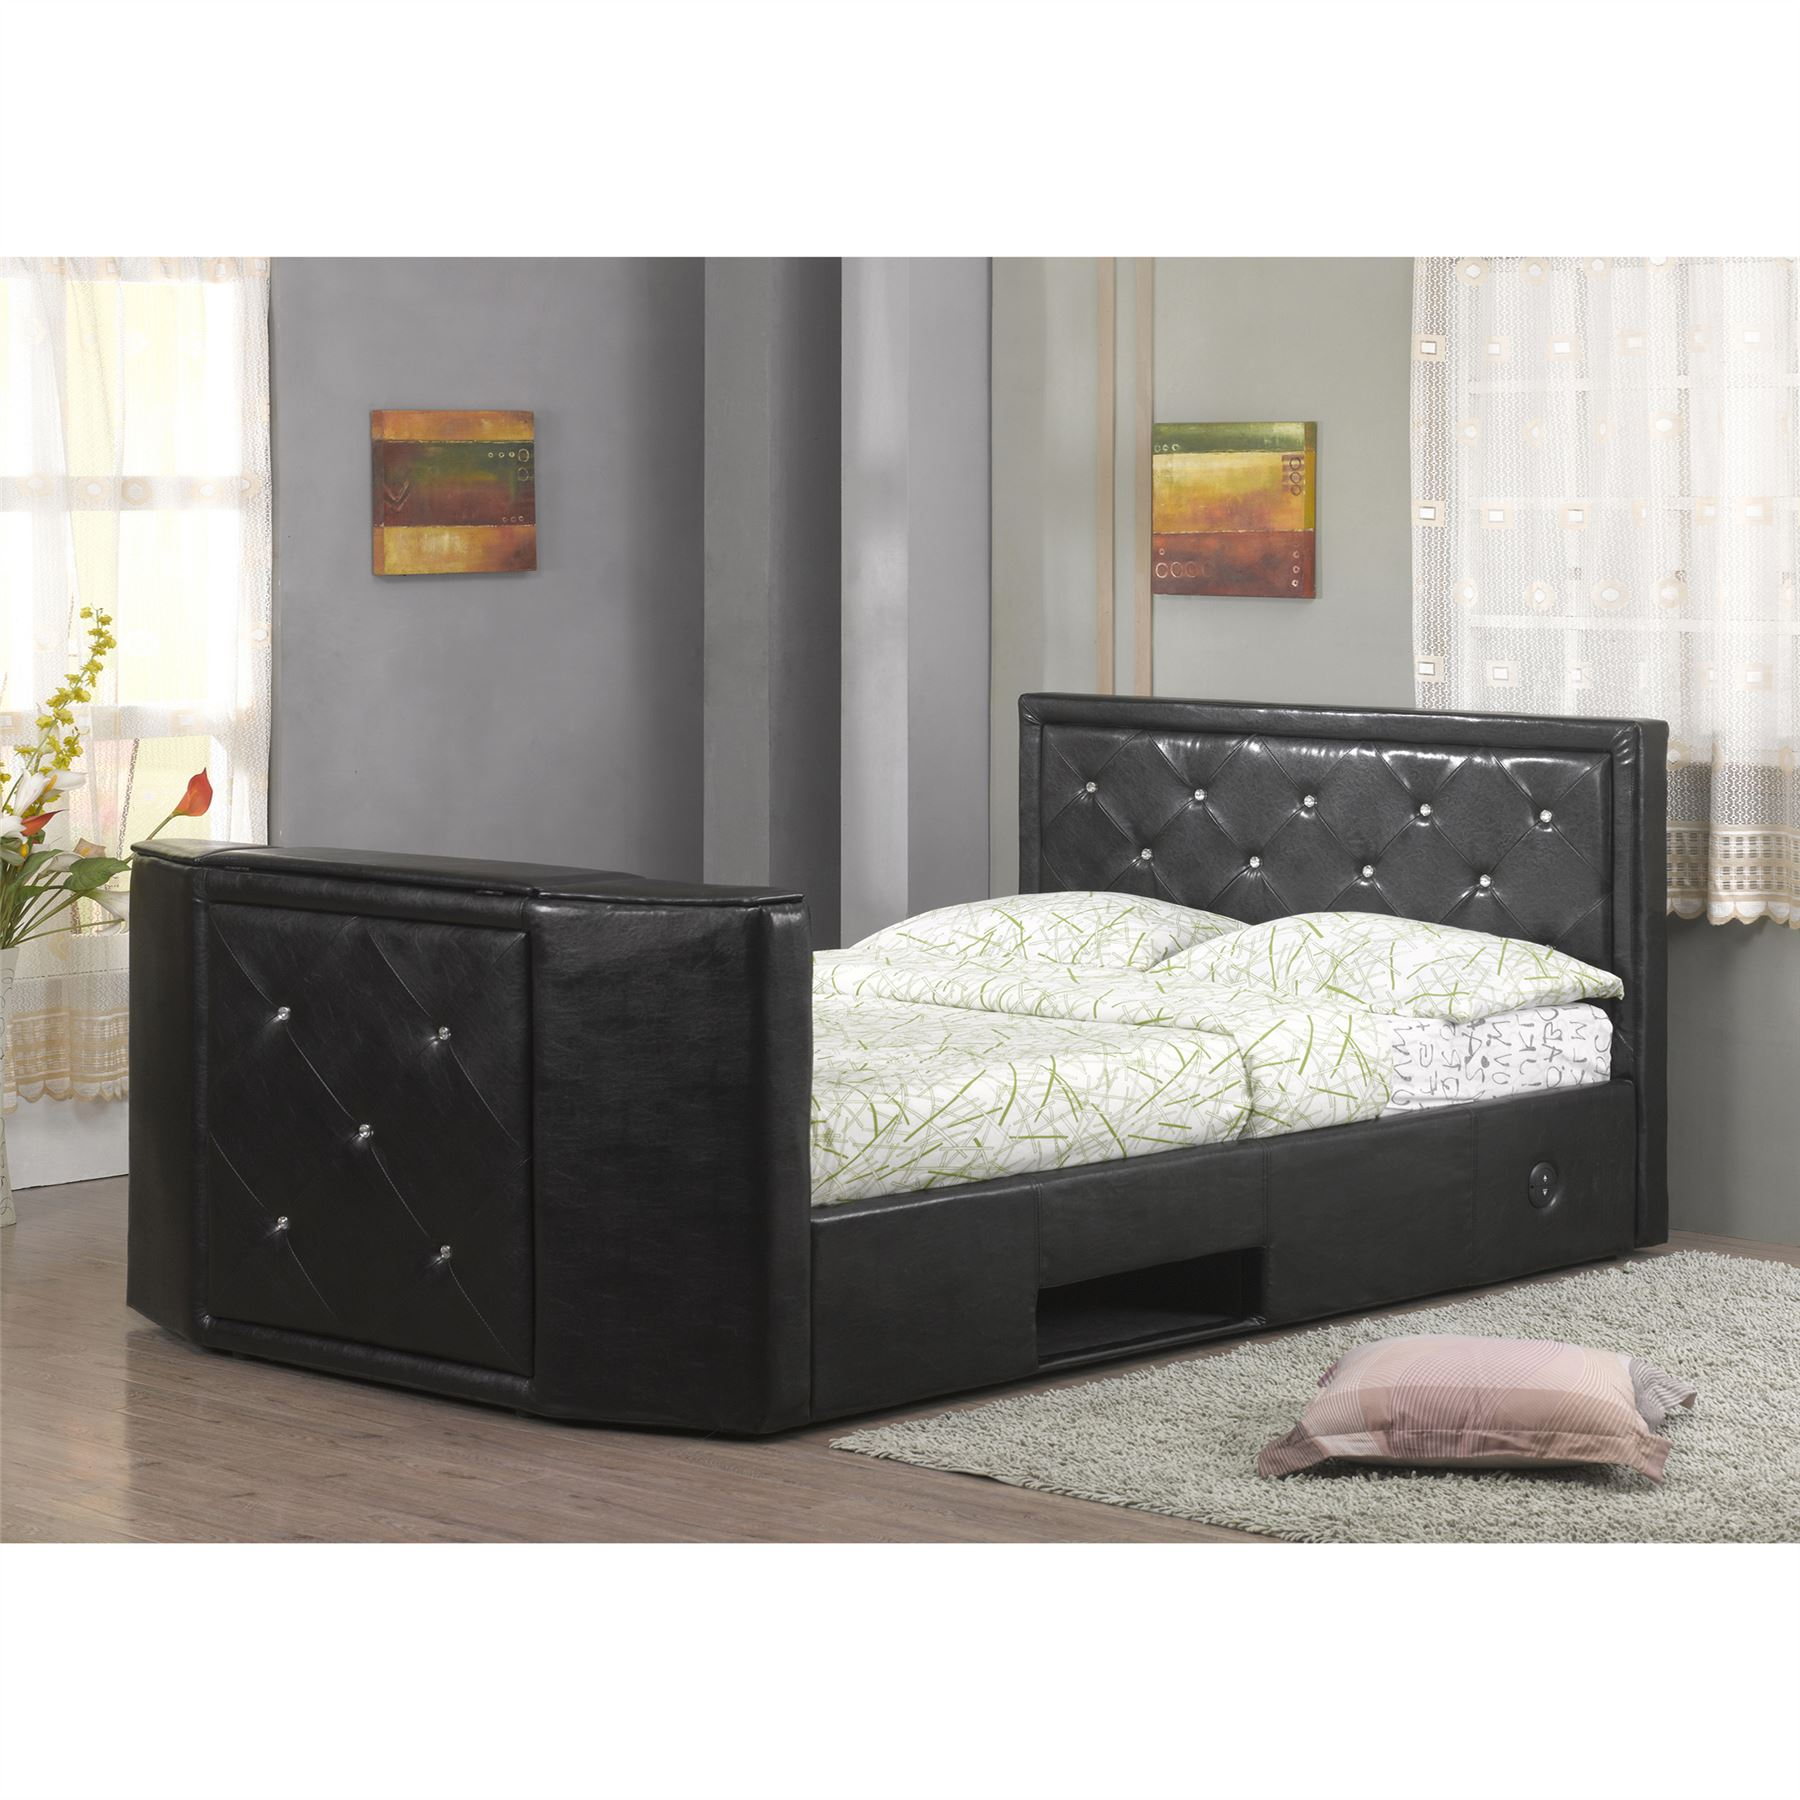 luxurious hollywood leather crystal mount bed remote control electronic tv lift ebay. Black Bedroom Furniture Sets. Home Design Ideas